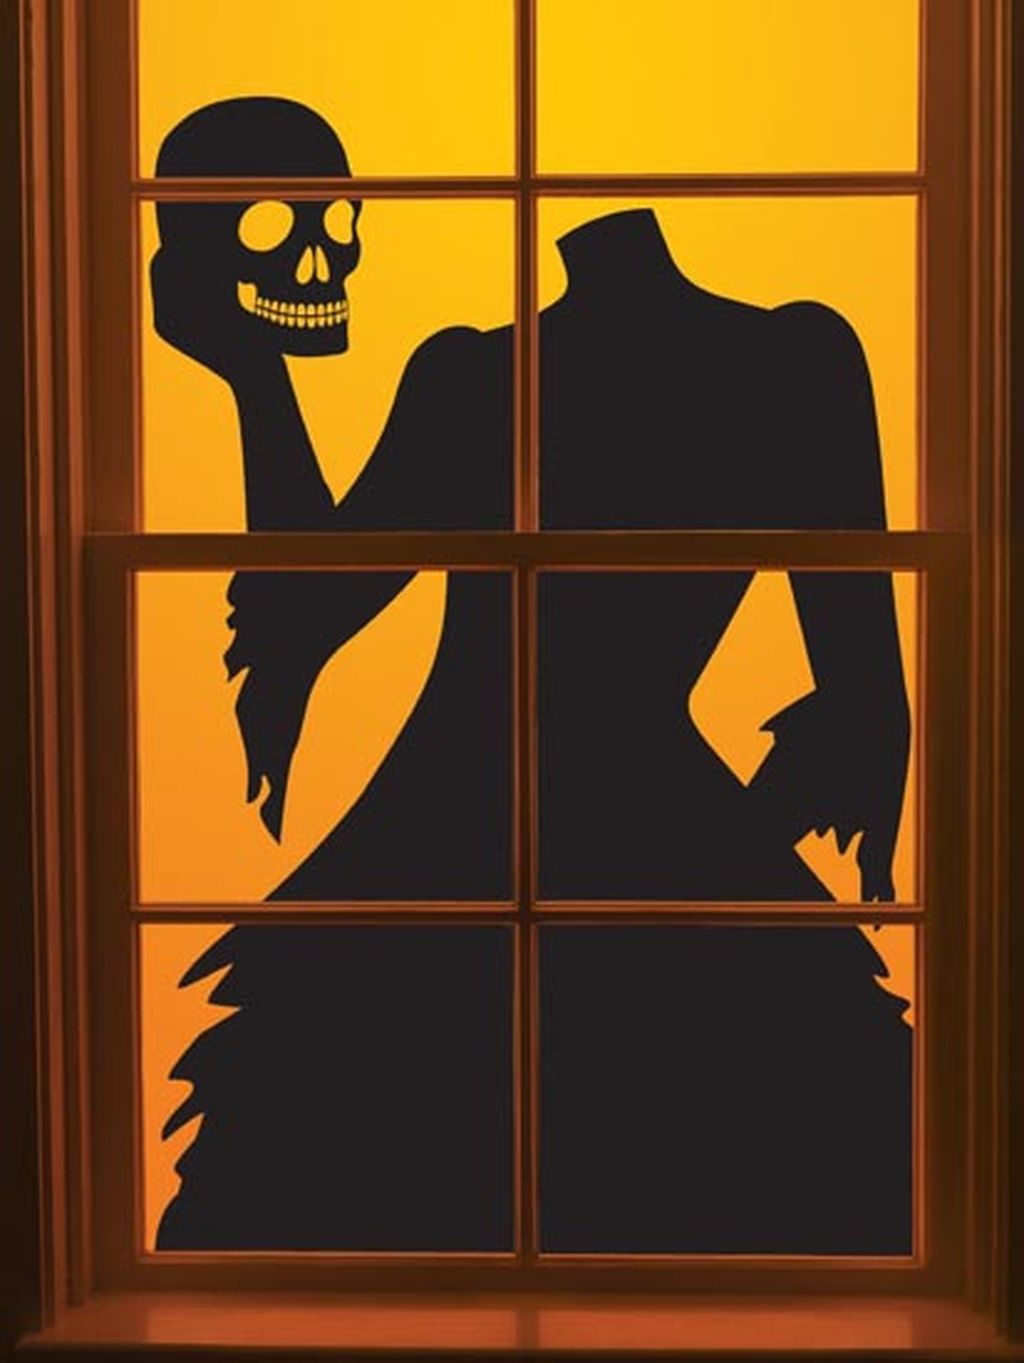 Scary But Creative DIY Halloween Window Decorations Ideas You Should Try 41